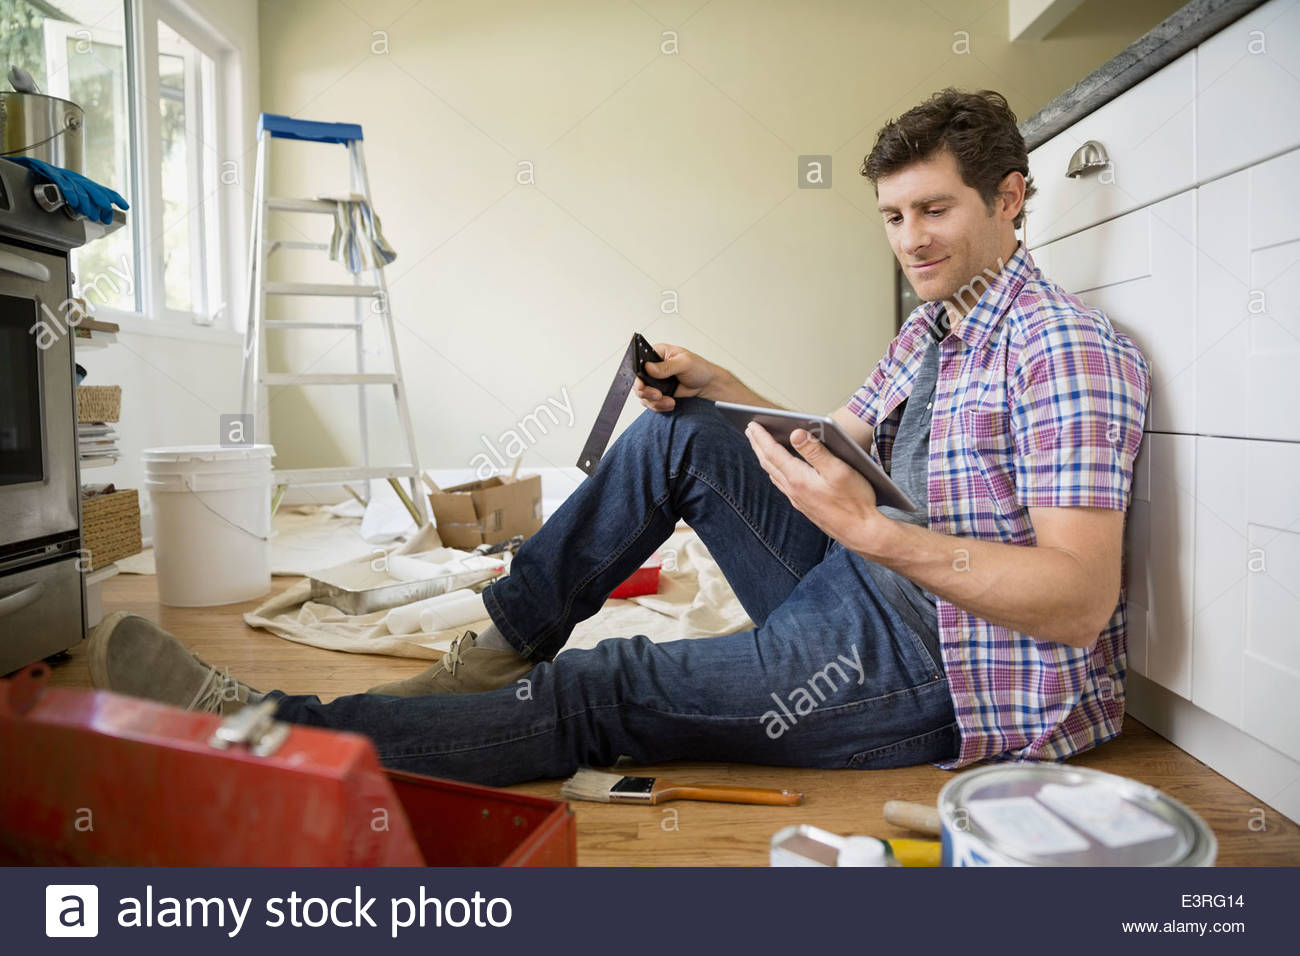 Man with digital tablet starting painting project - Stock Image